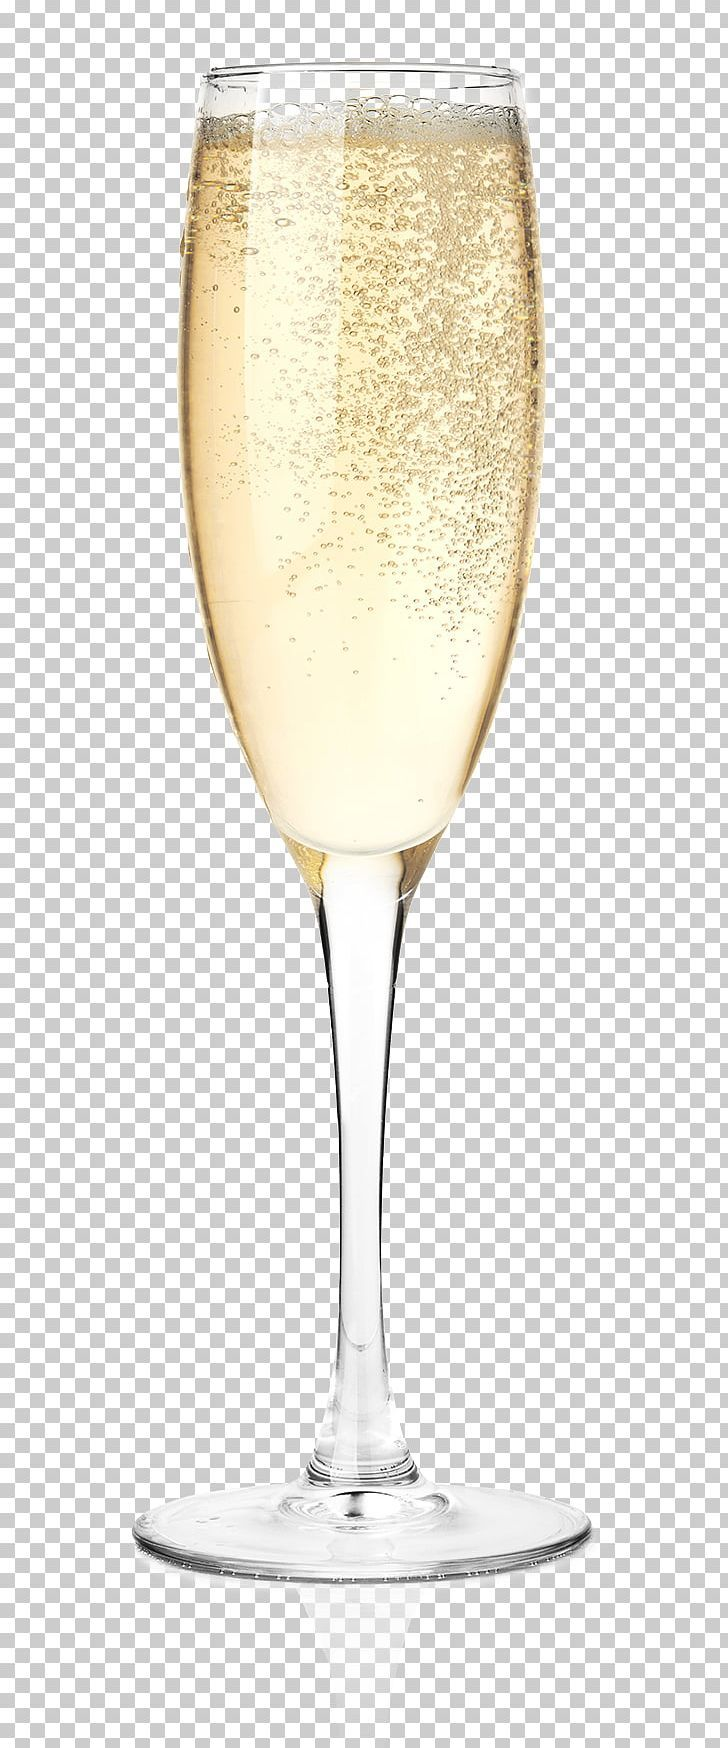 Champagne Cocktail Wine Glass Champagne Glass Png Alcoholic Drink Bauman Beer Glass Beer Glasses Champagne Wine Glass Champagne Cocktail Wine